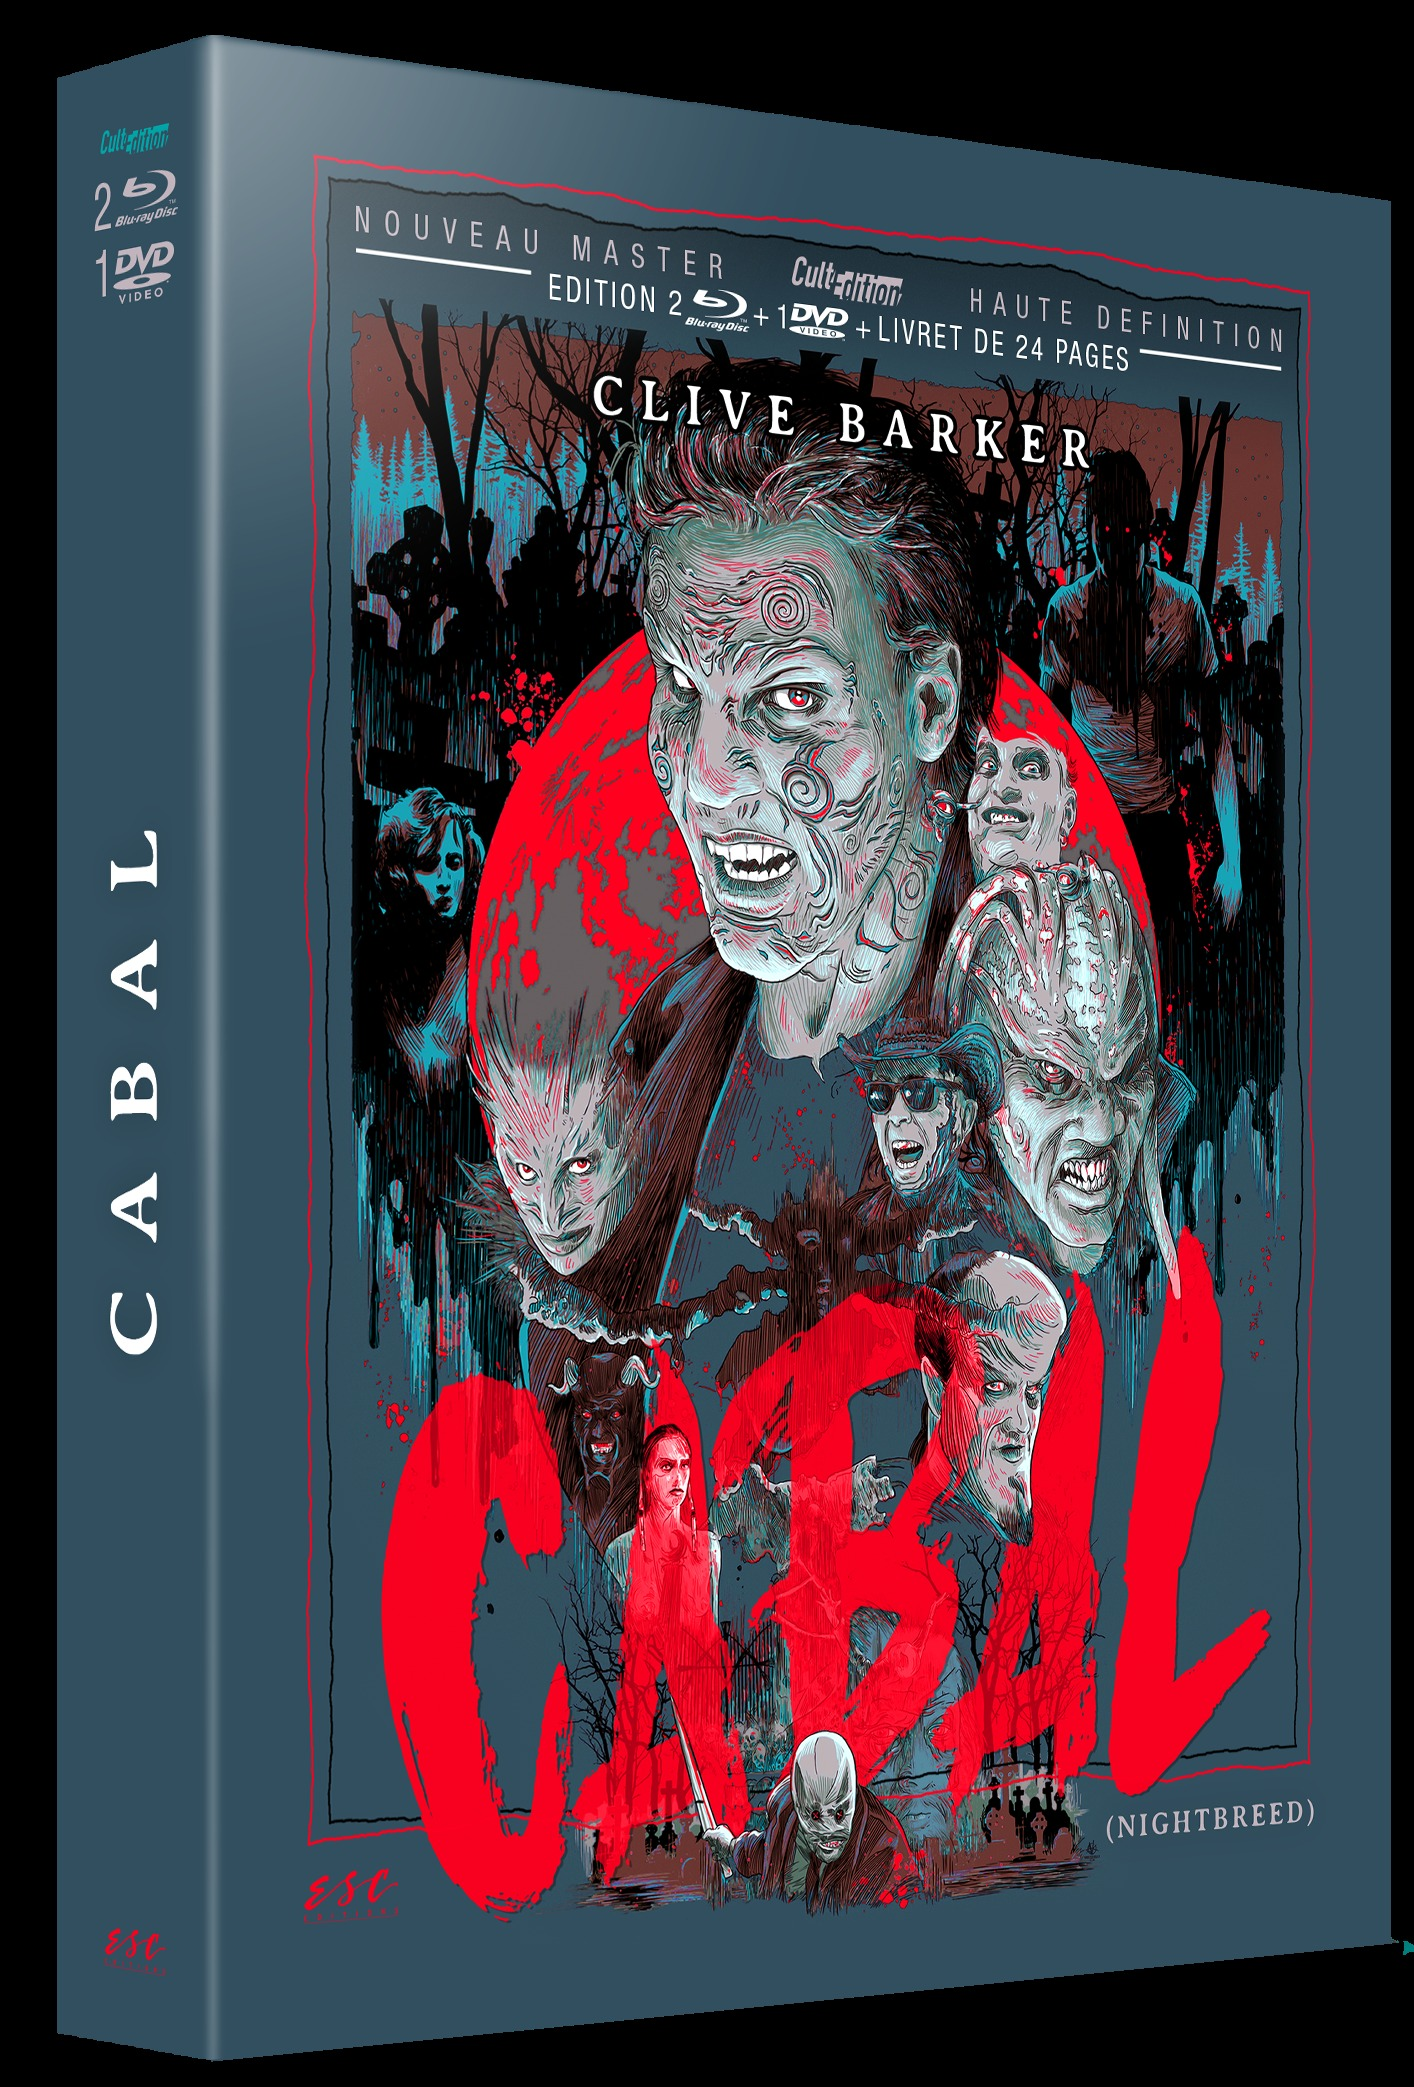 CABAL CULT'EDITION - DIGIPACK 2 BLU-RAY + 1 DVD + 1 LIVRET 24 PAGES